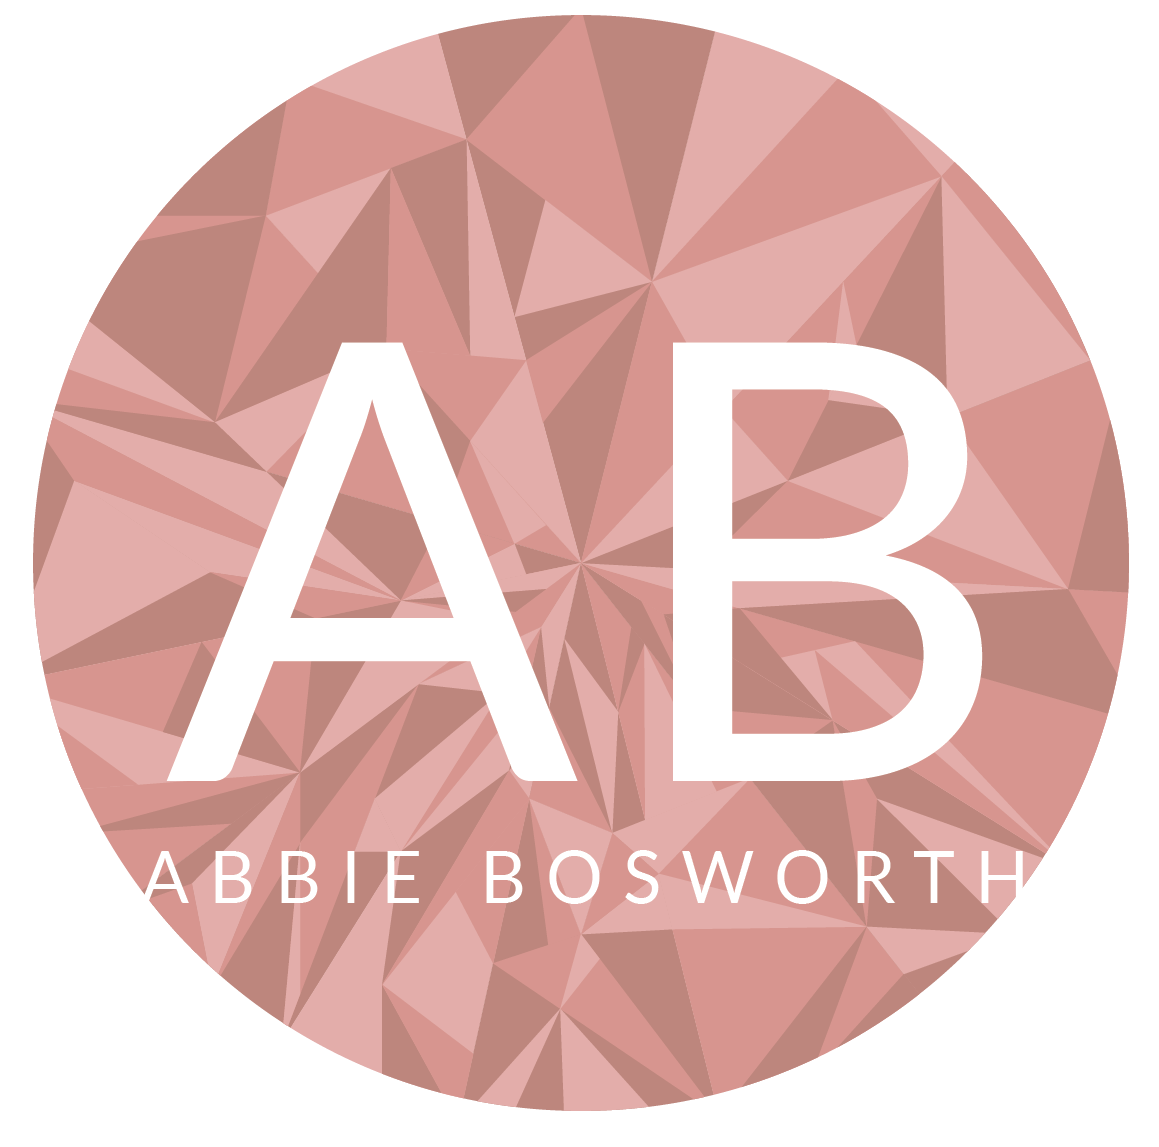 Abbie Bosworth